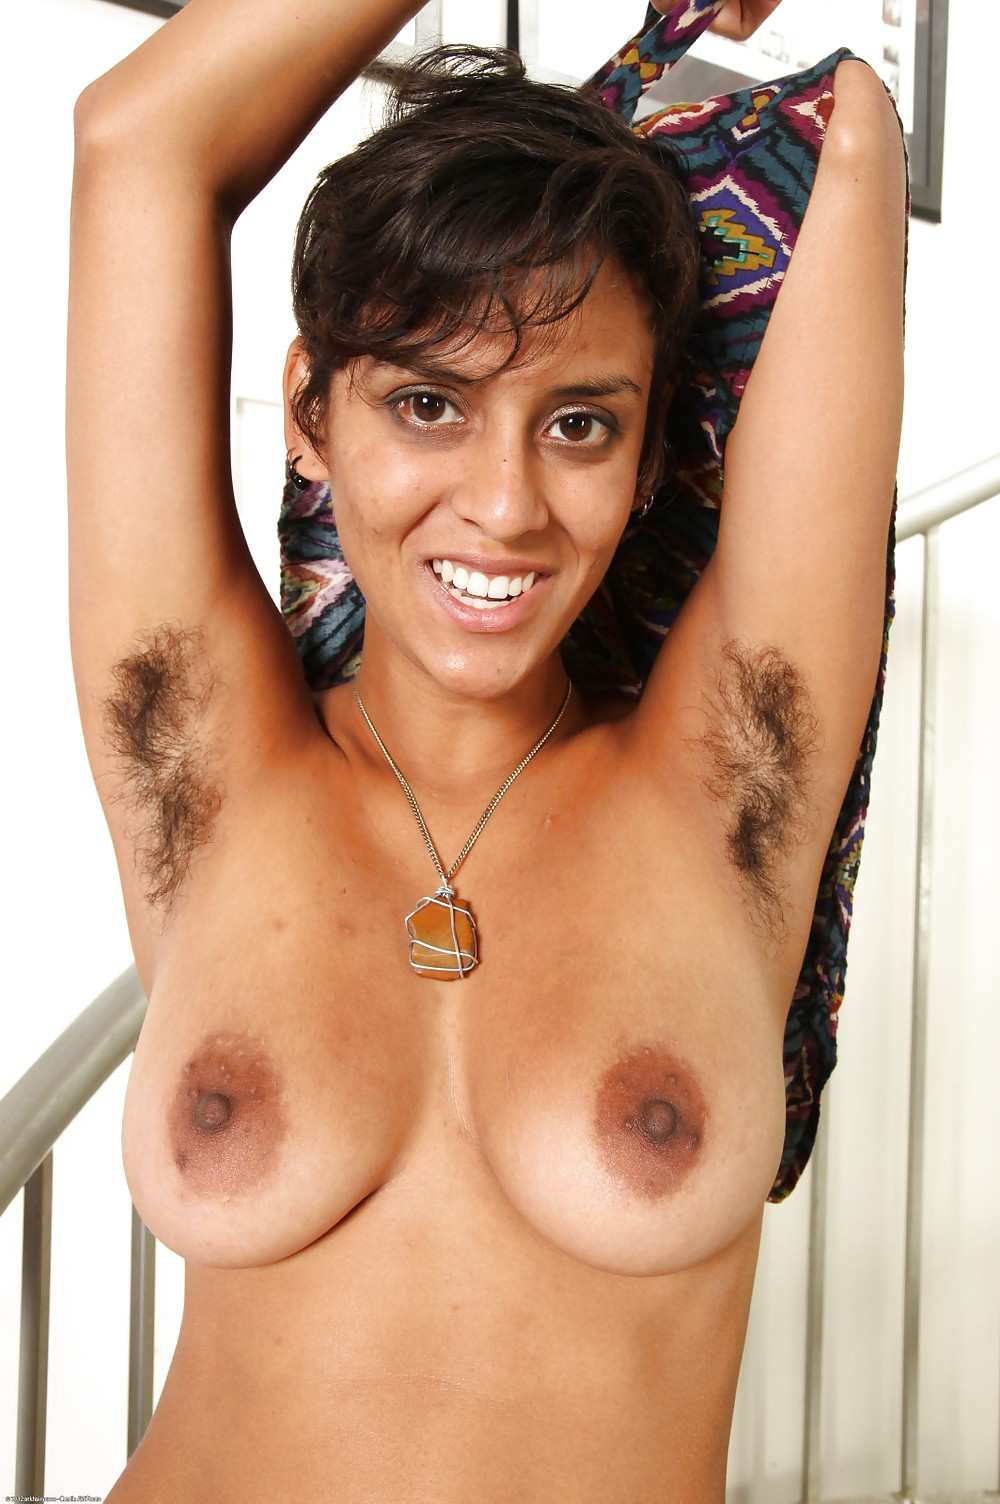 Naked girl with hairy armpits — 5